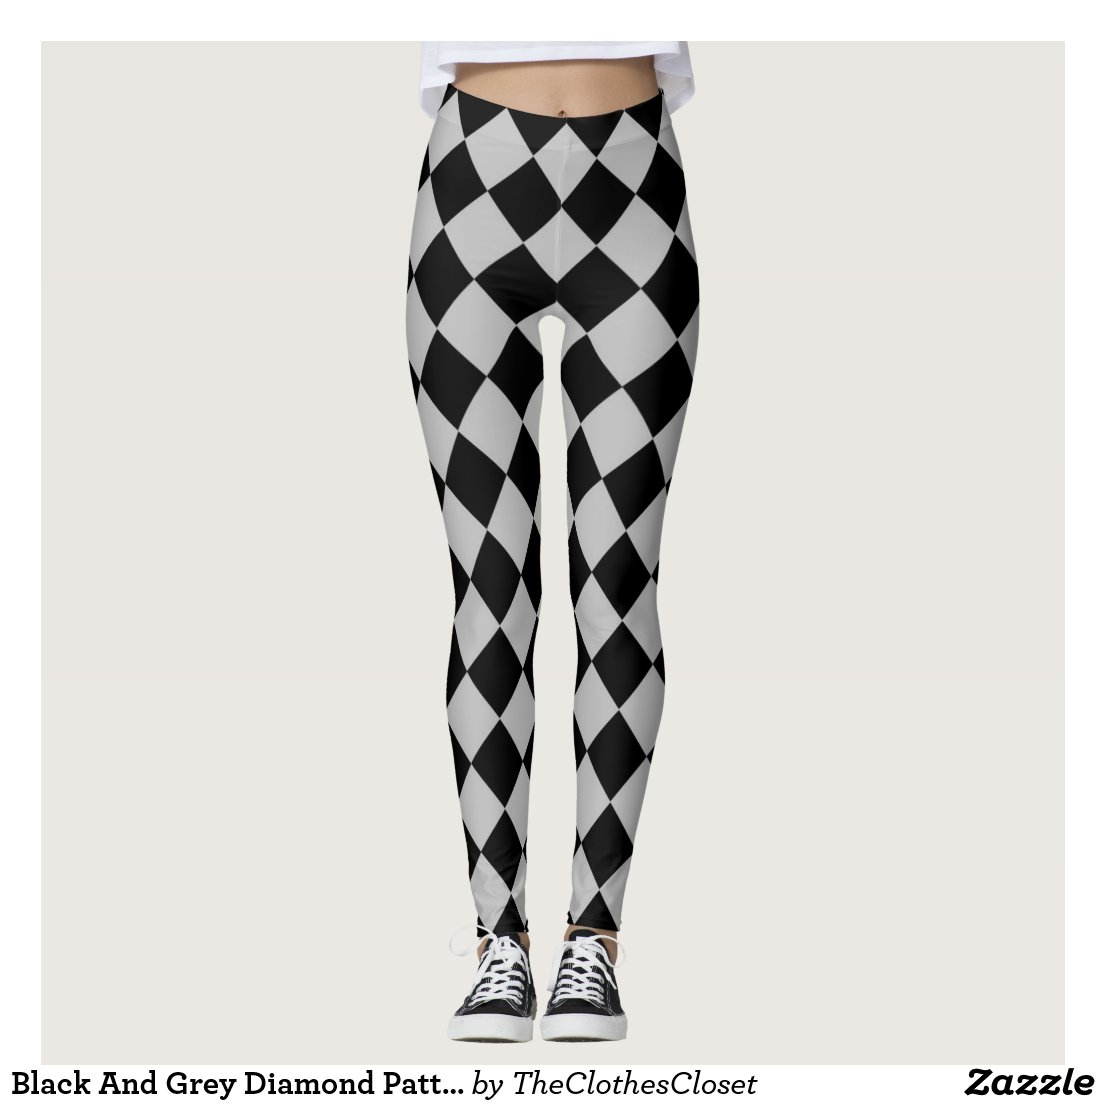 Black And Grey Diamond Pattern Leggings